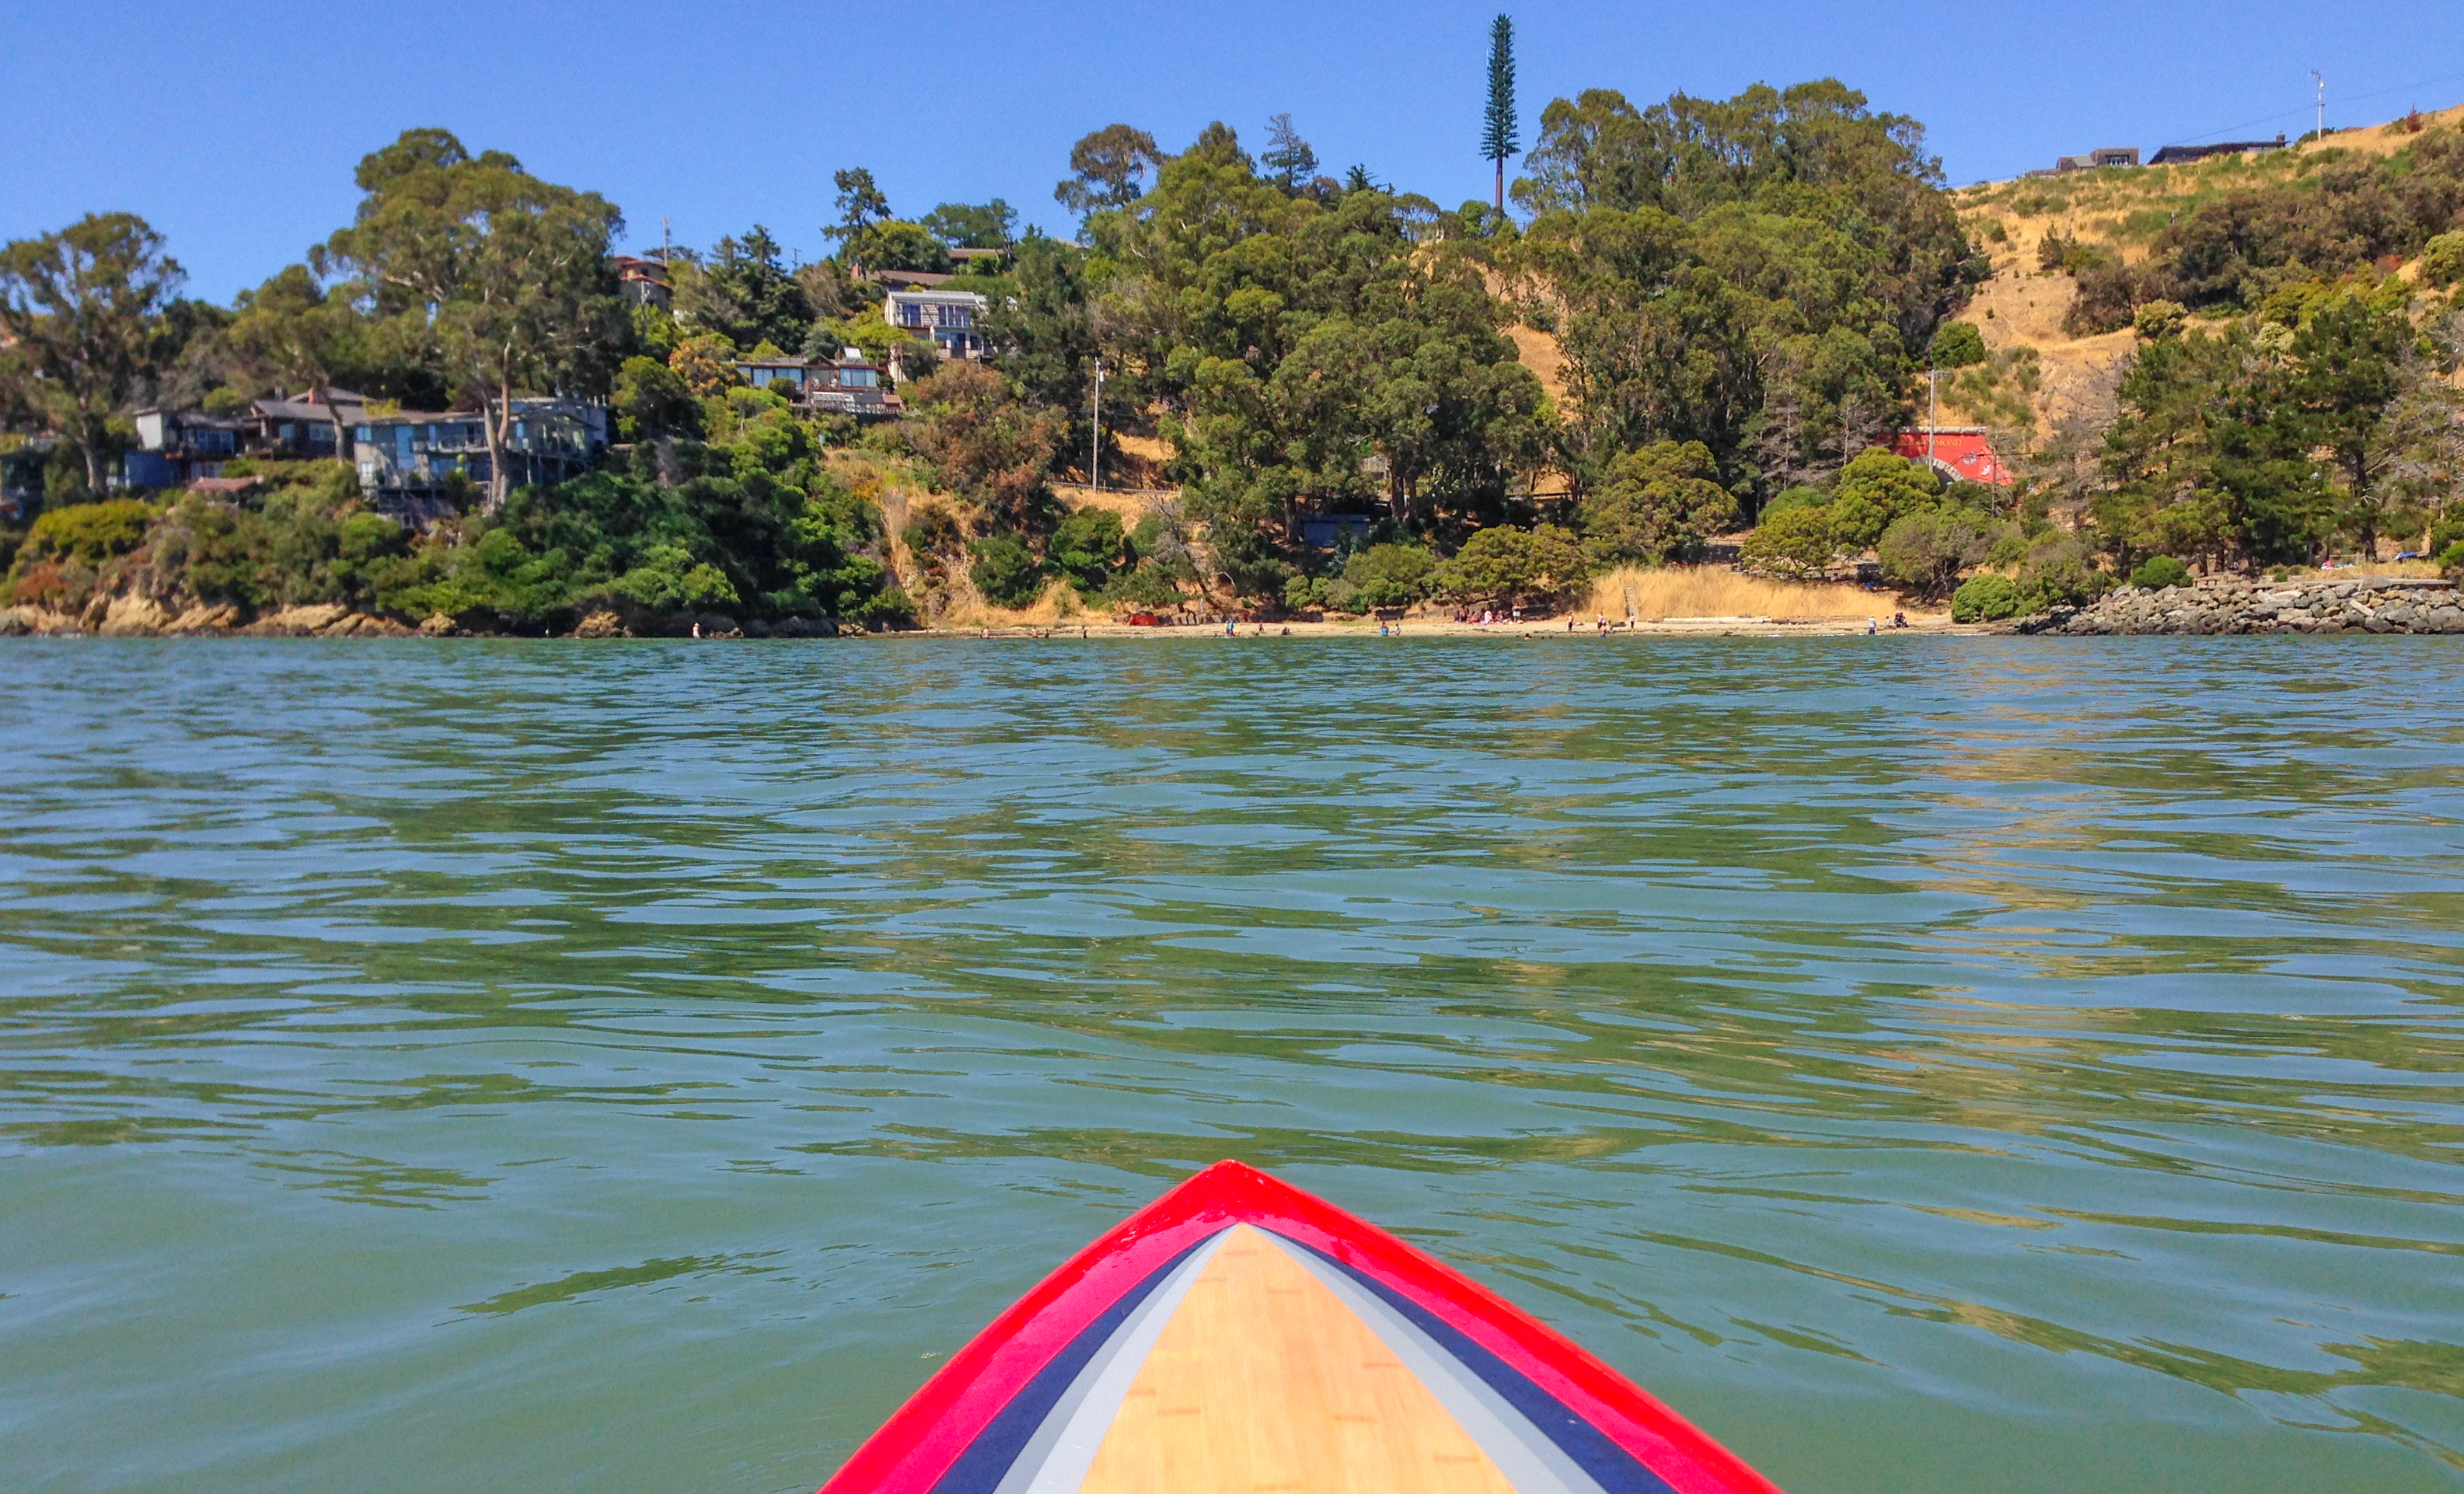 View from kayak with tip in foreground, water and shoreline beyond